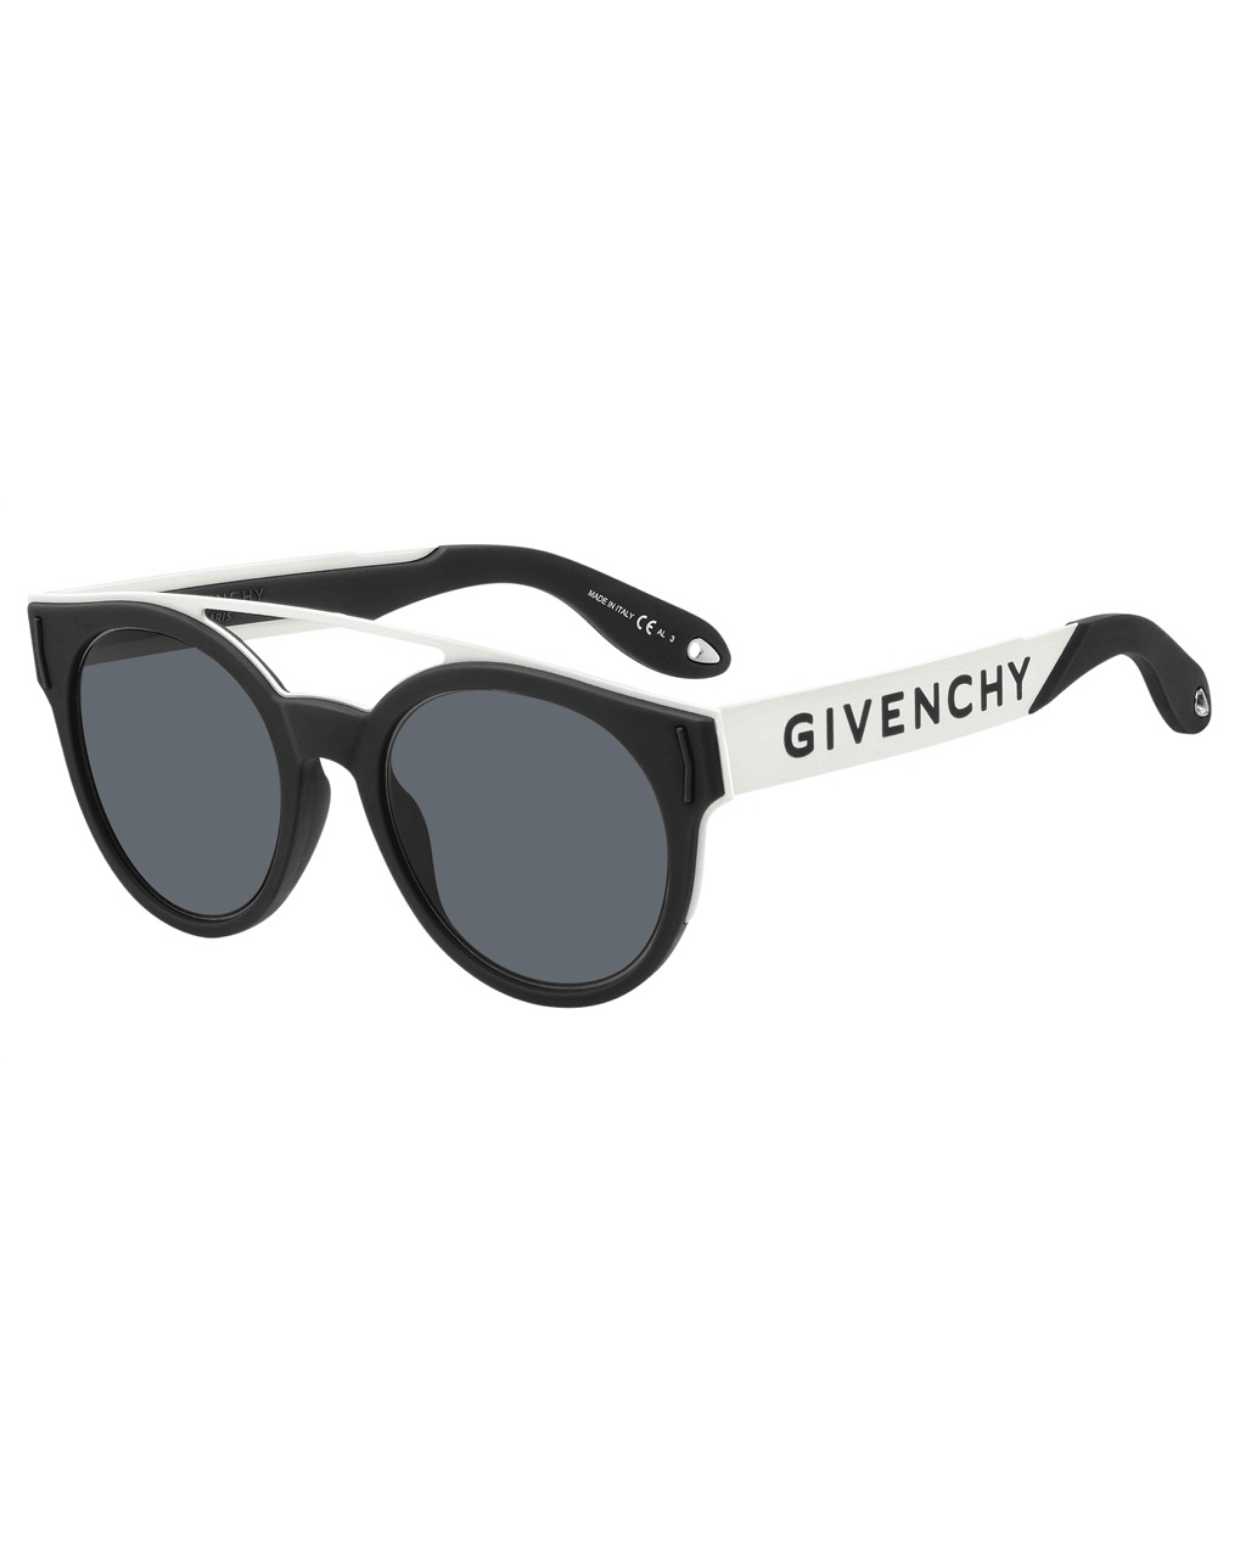 Givenchy GV 7017/N/S 80S 50 Black/White